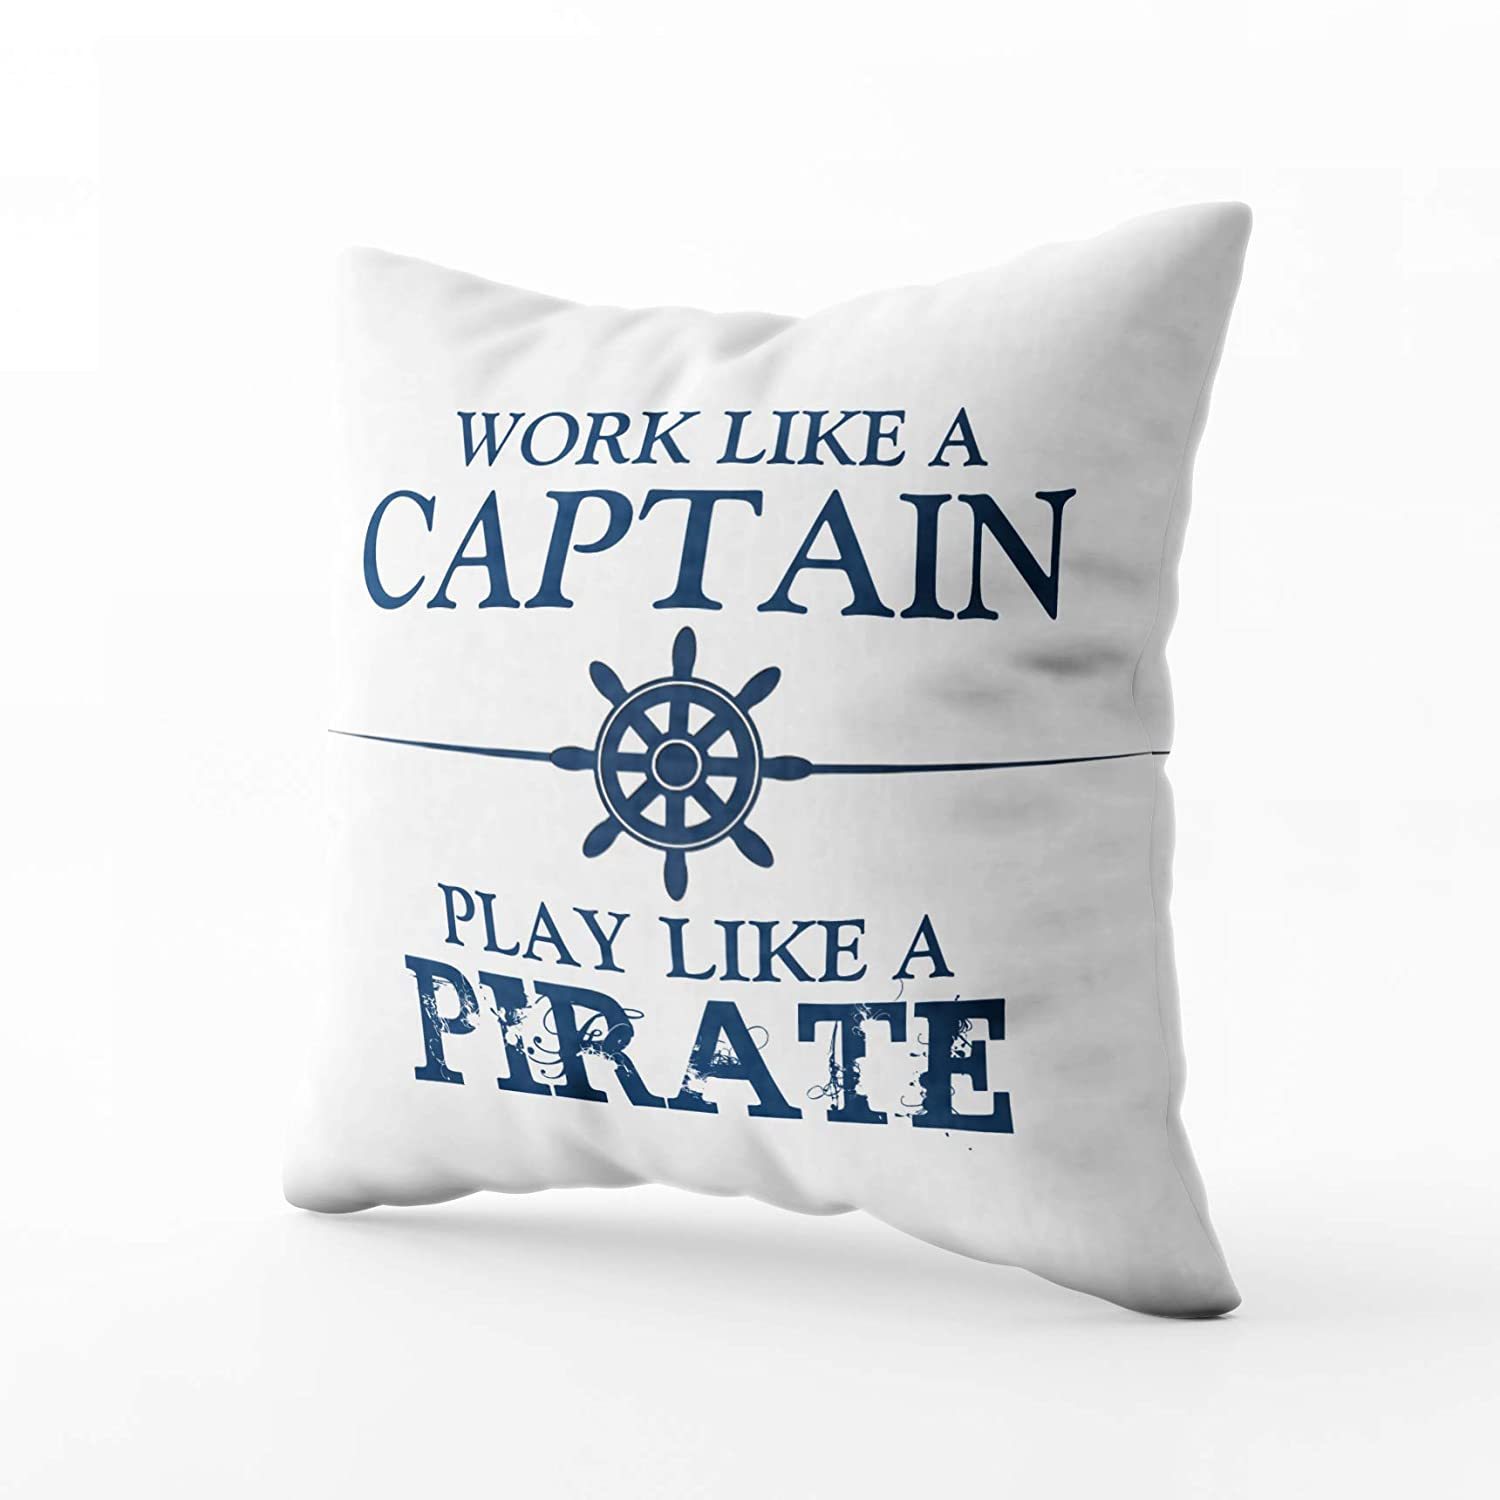 Capsceoll work like a captain play like a pirate quote Decorative Throw Pillow Case 18X18Inch,Home Decoration Pillowcase Zippered Pillow Covers Cushion Cover with Words for Book Lover Worm Sofa Couch